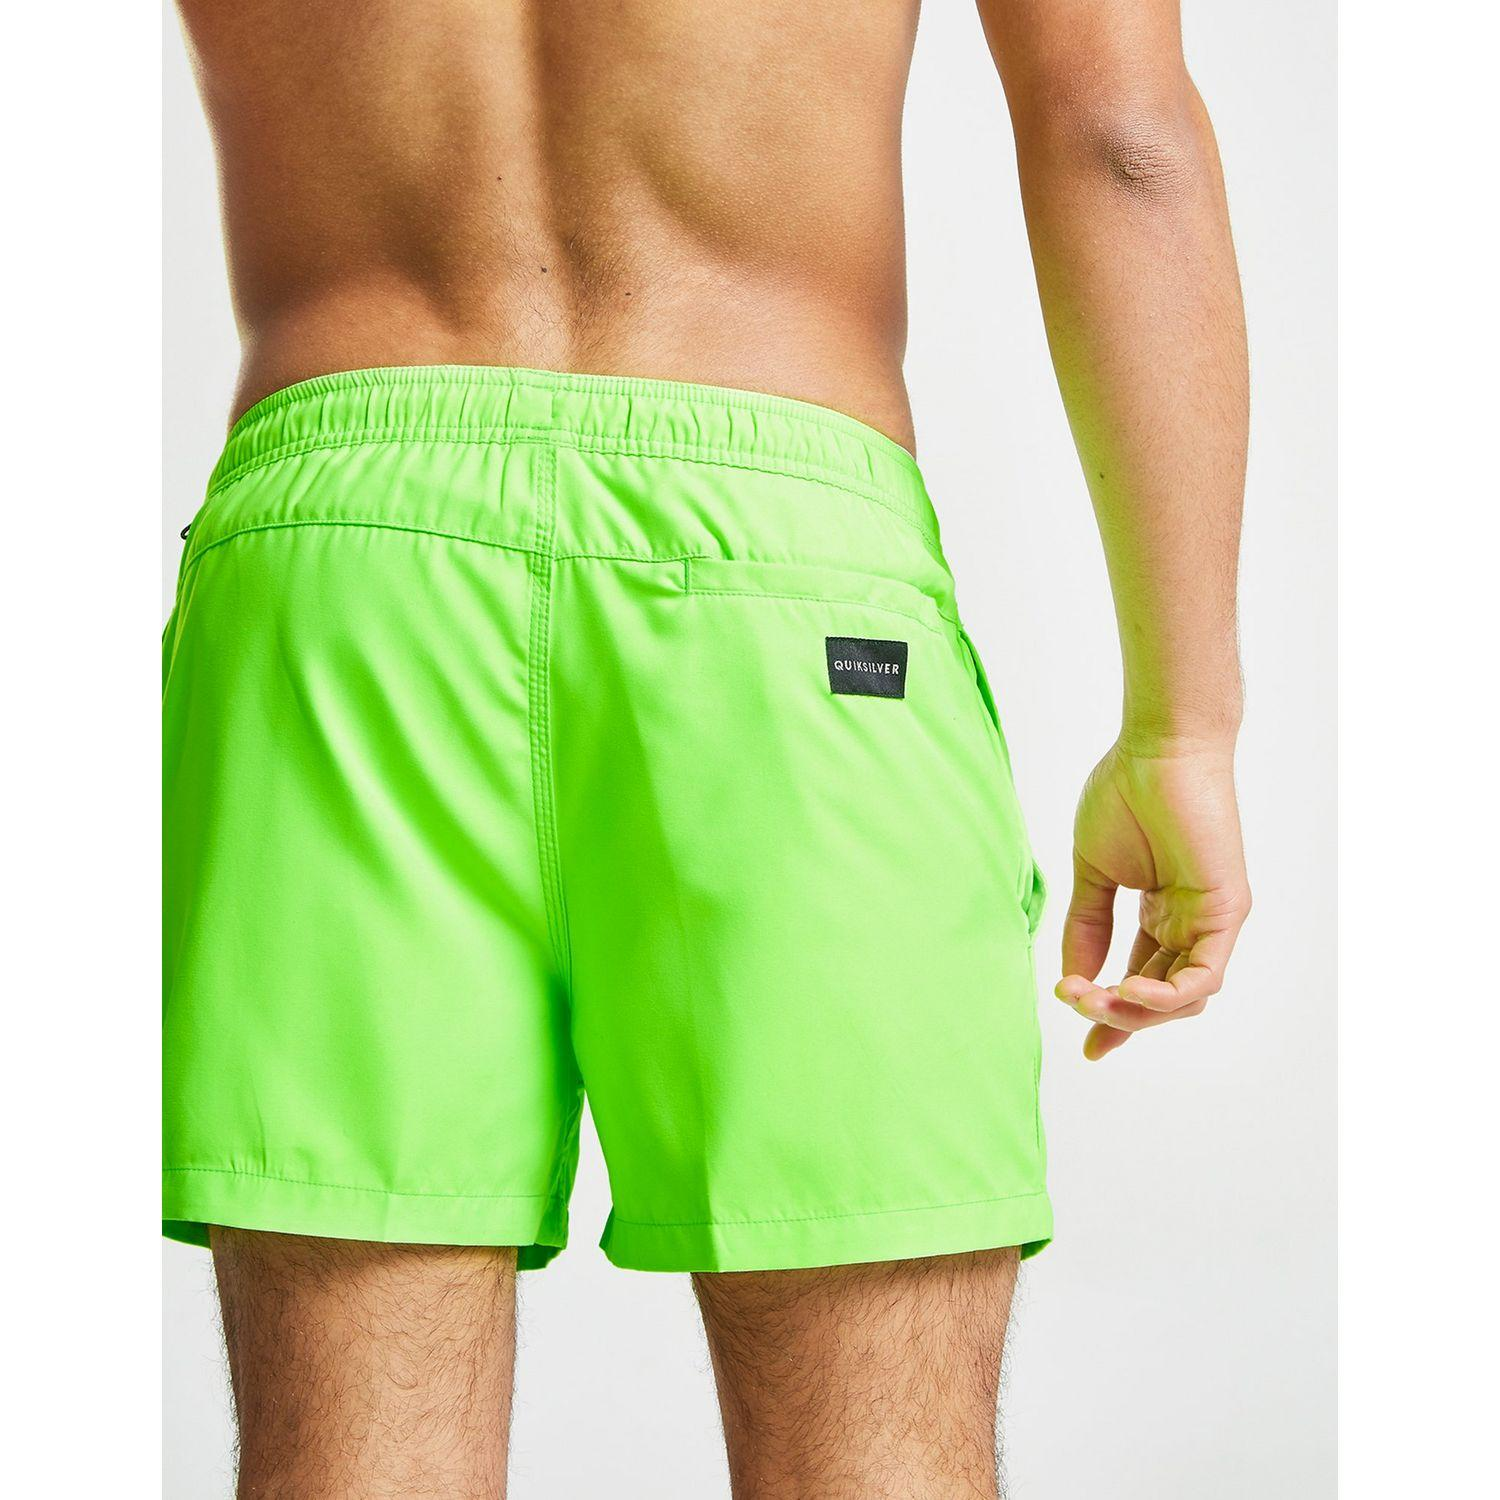 Quiksilver Synthetic Everyday Swim Shorts in Green/Black